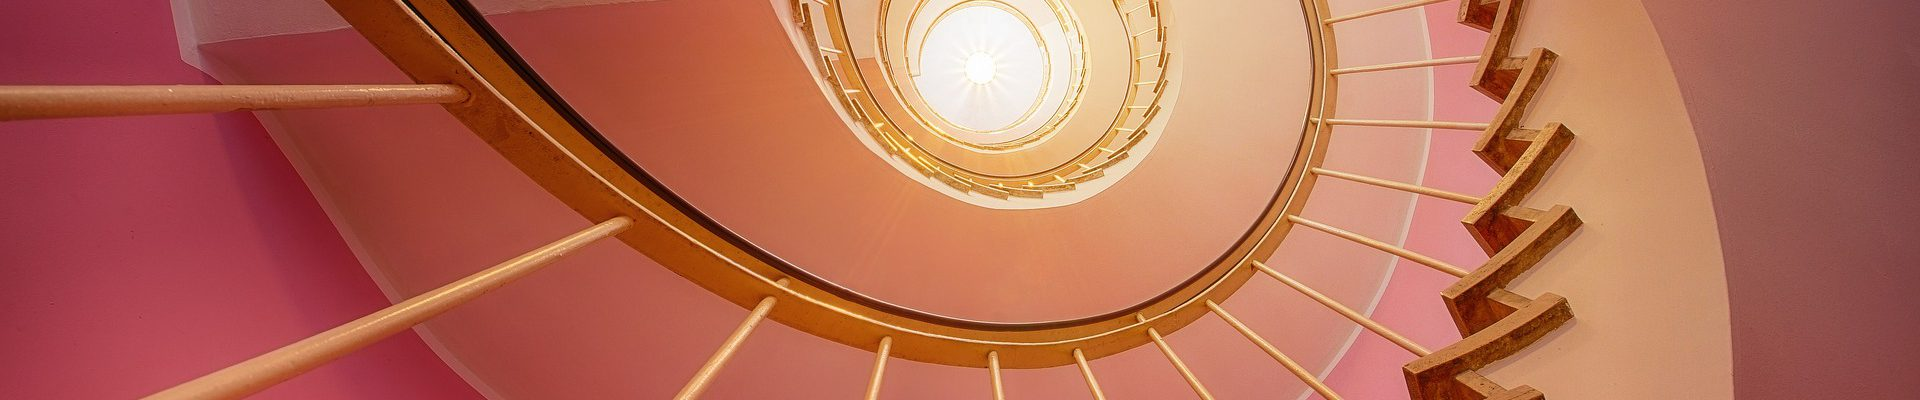 stairs-3112405_1920